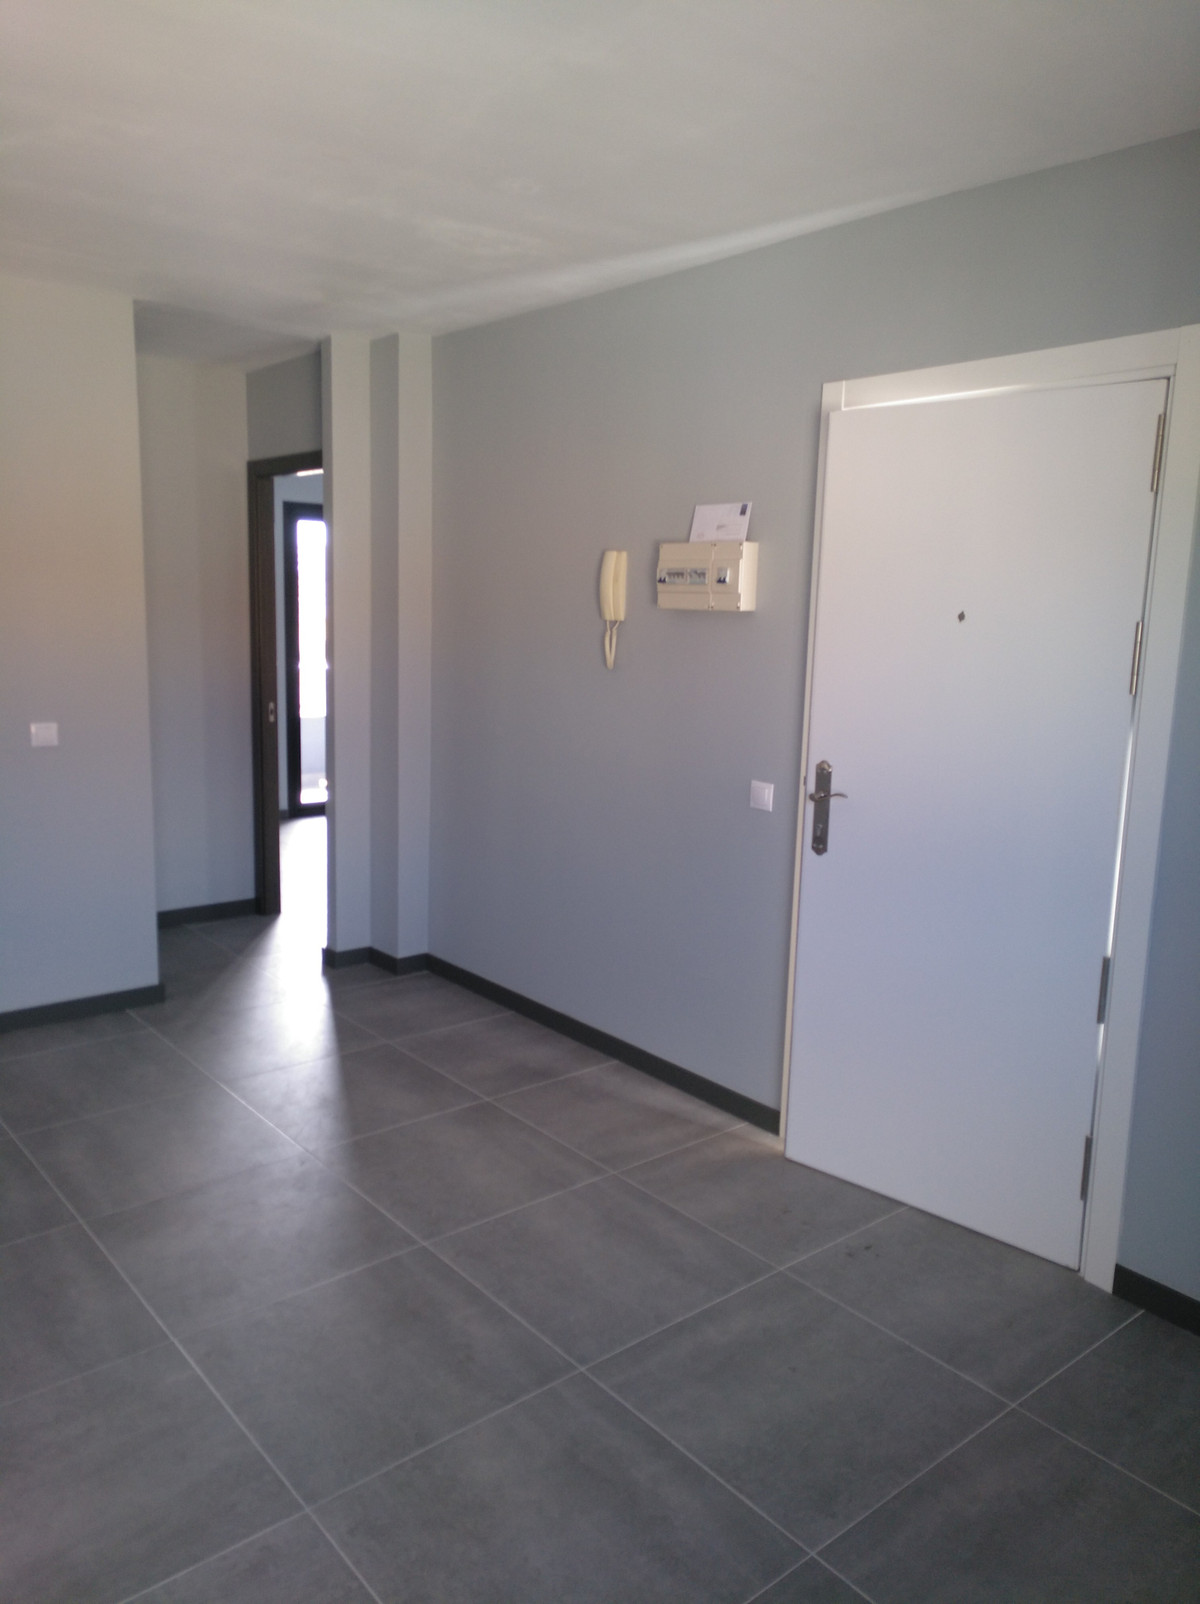 Penthouse completely renovated, located in the heart of Fuengirola, just 300 meters from the beach. ,Spain